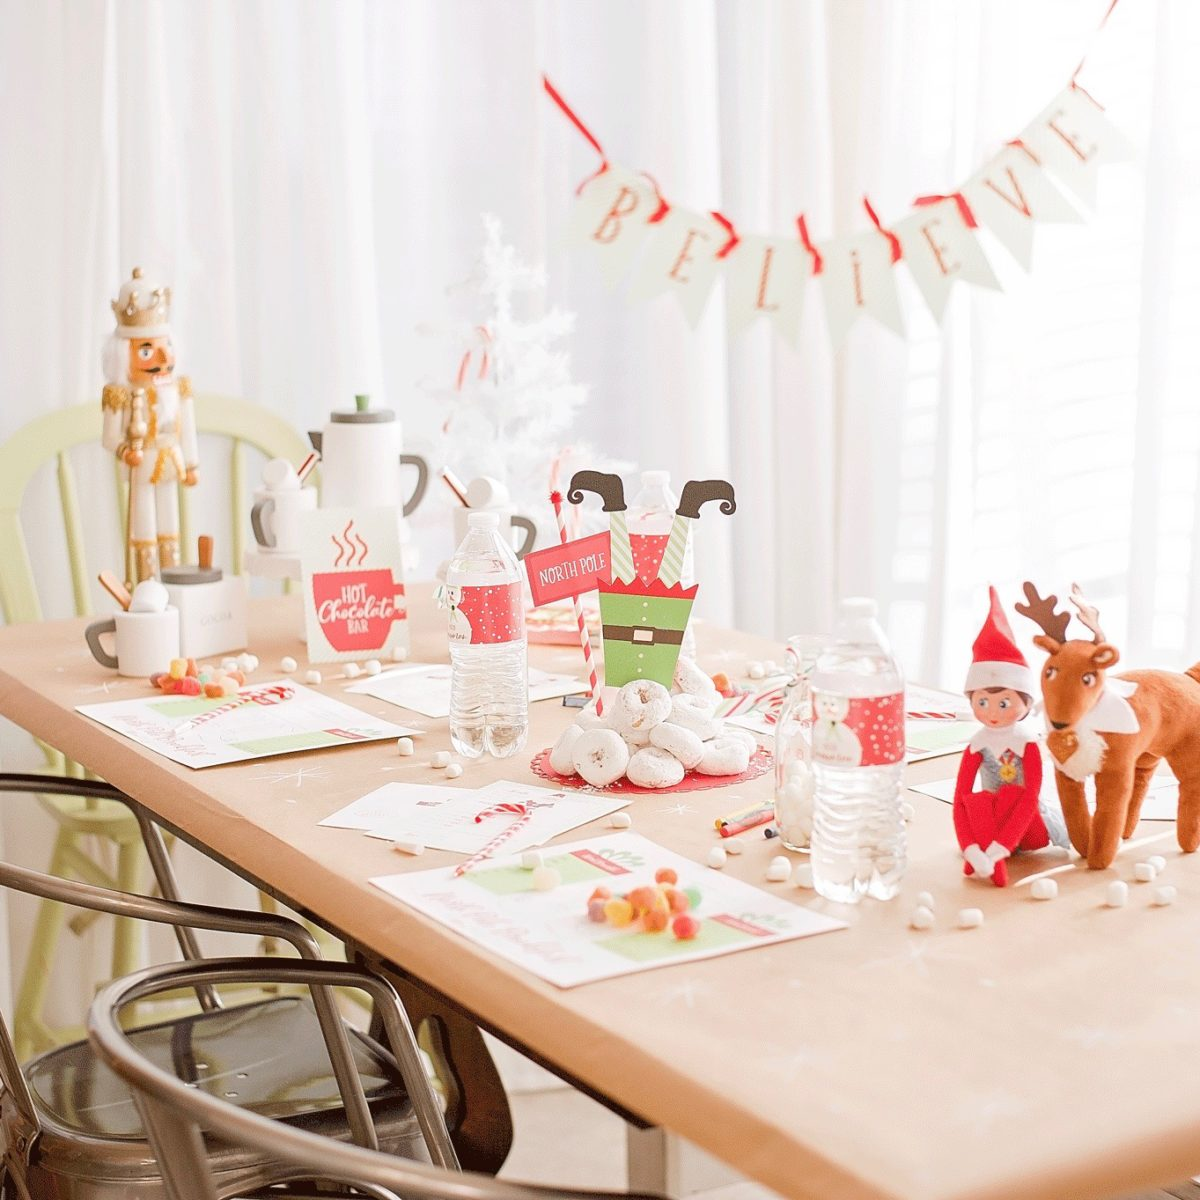 North Pole Breakfast for Elf Arrival Day | Party Package by Posted Fete | #Elf #ElfBreakfast #NorthPoleBreakfast